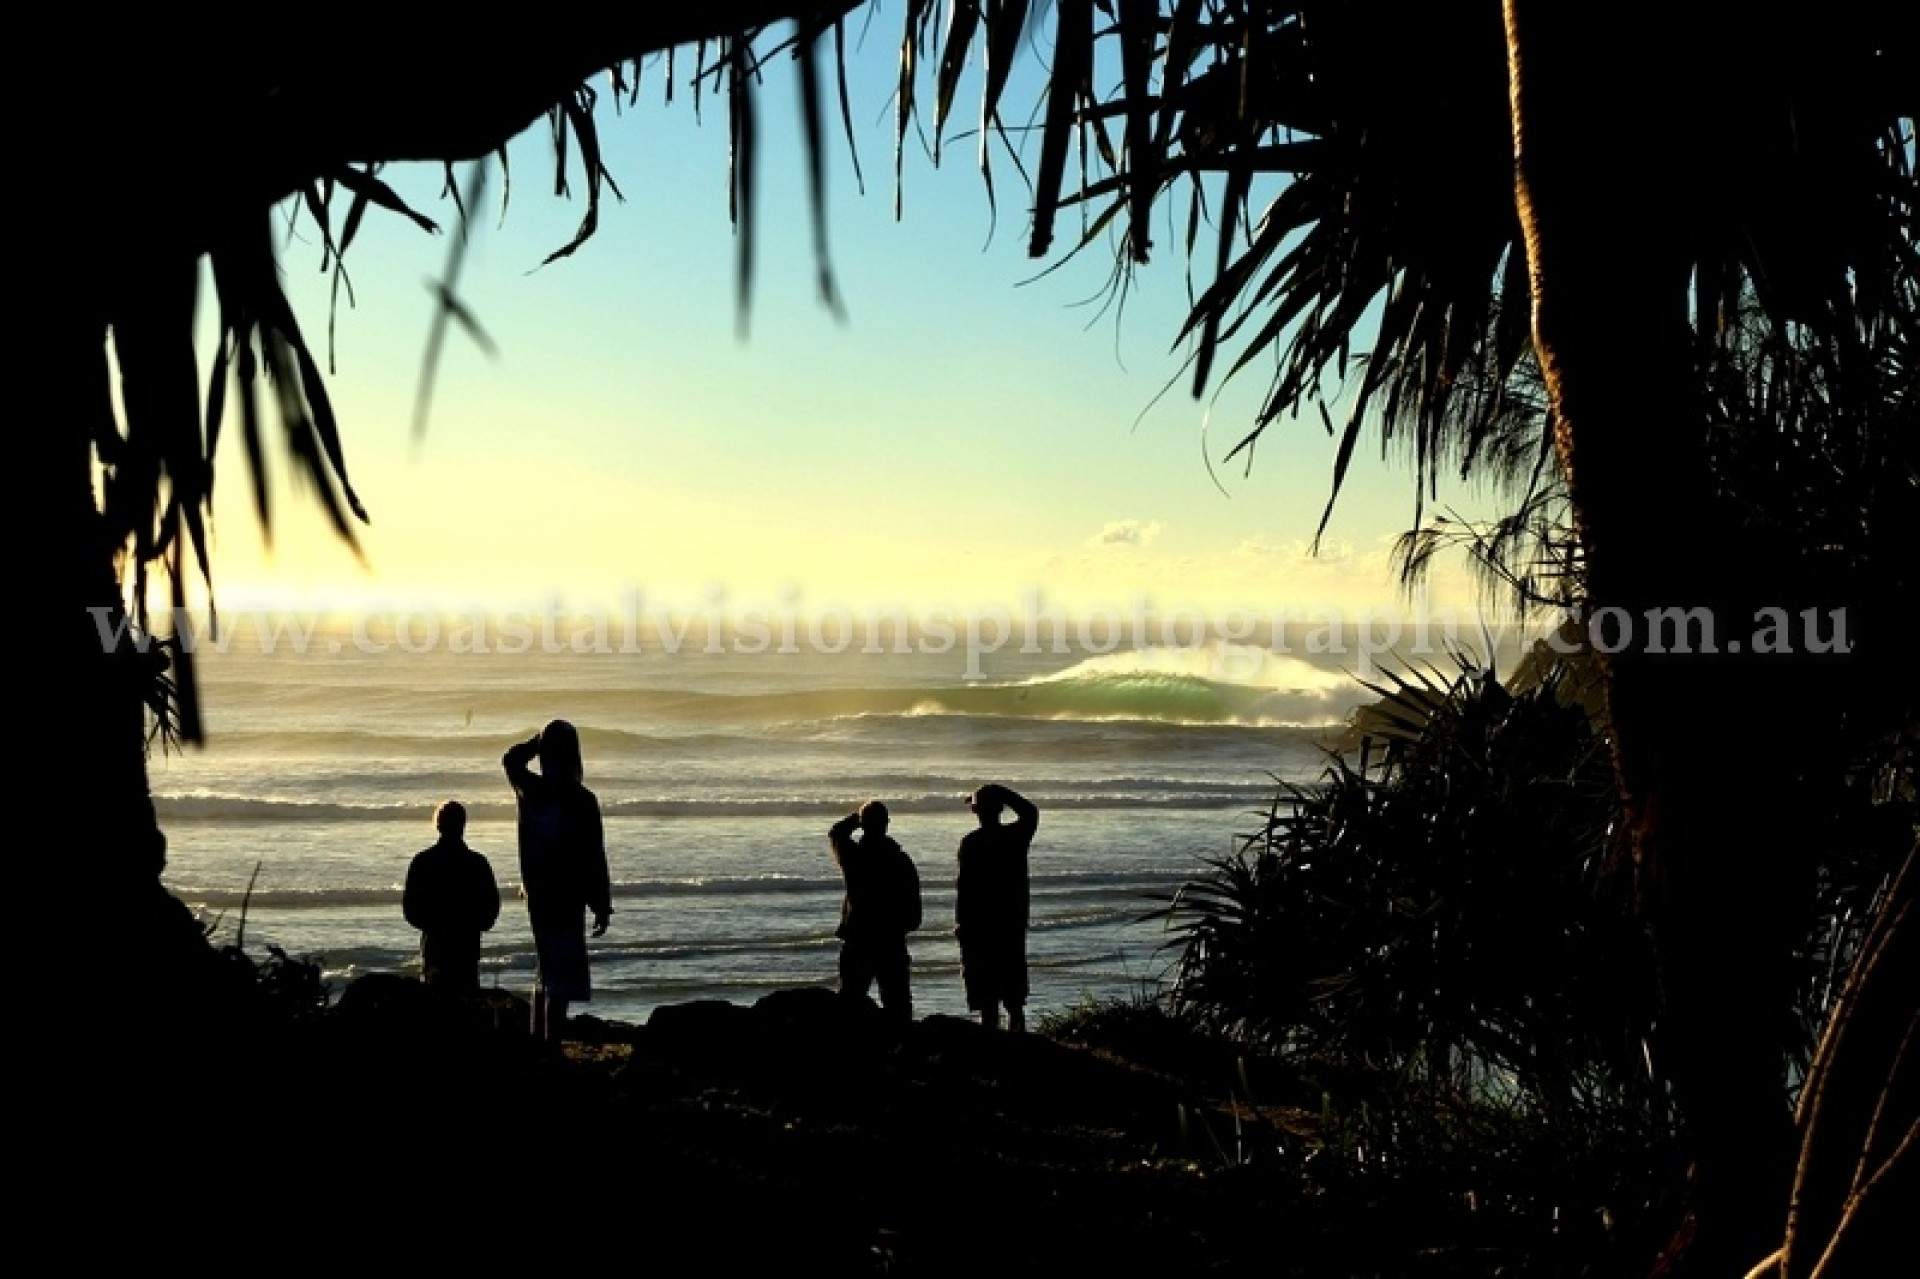 Coastal Visions Photography's photo of Cabarita